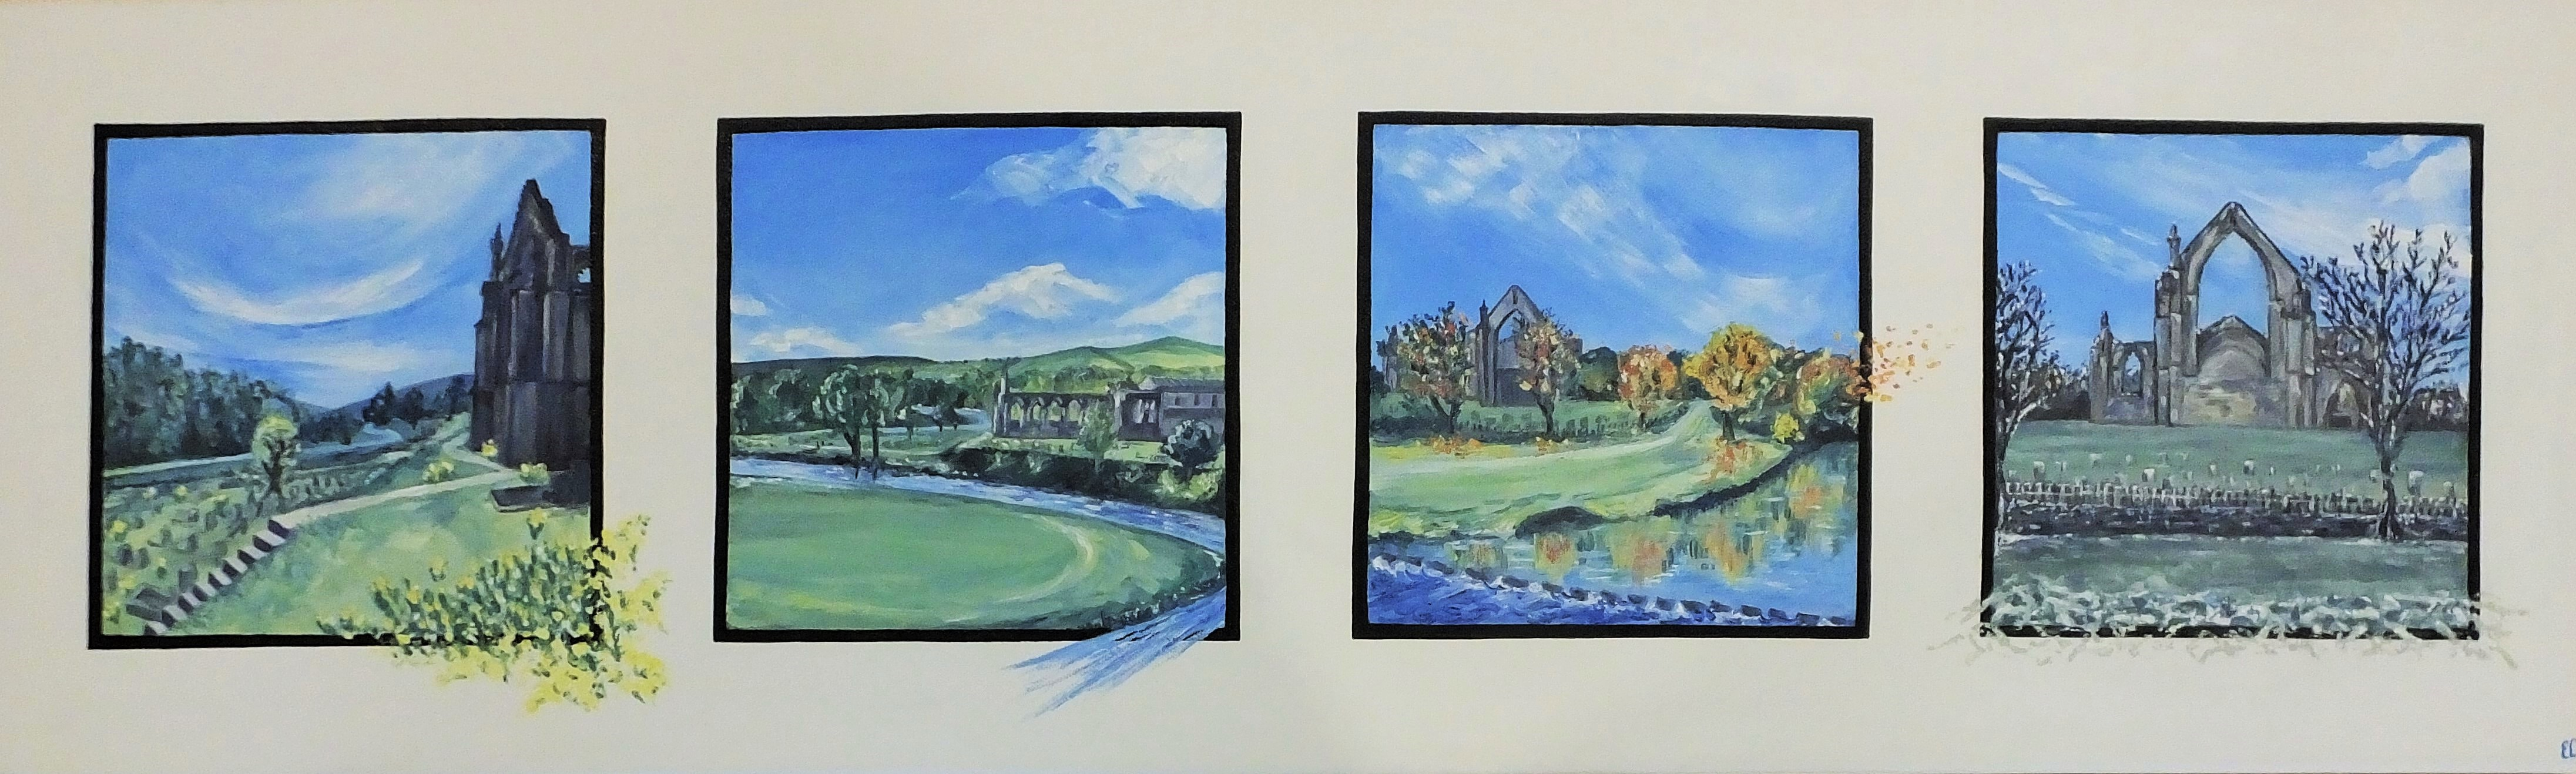 Bolton Abbey in the Four Seasons